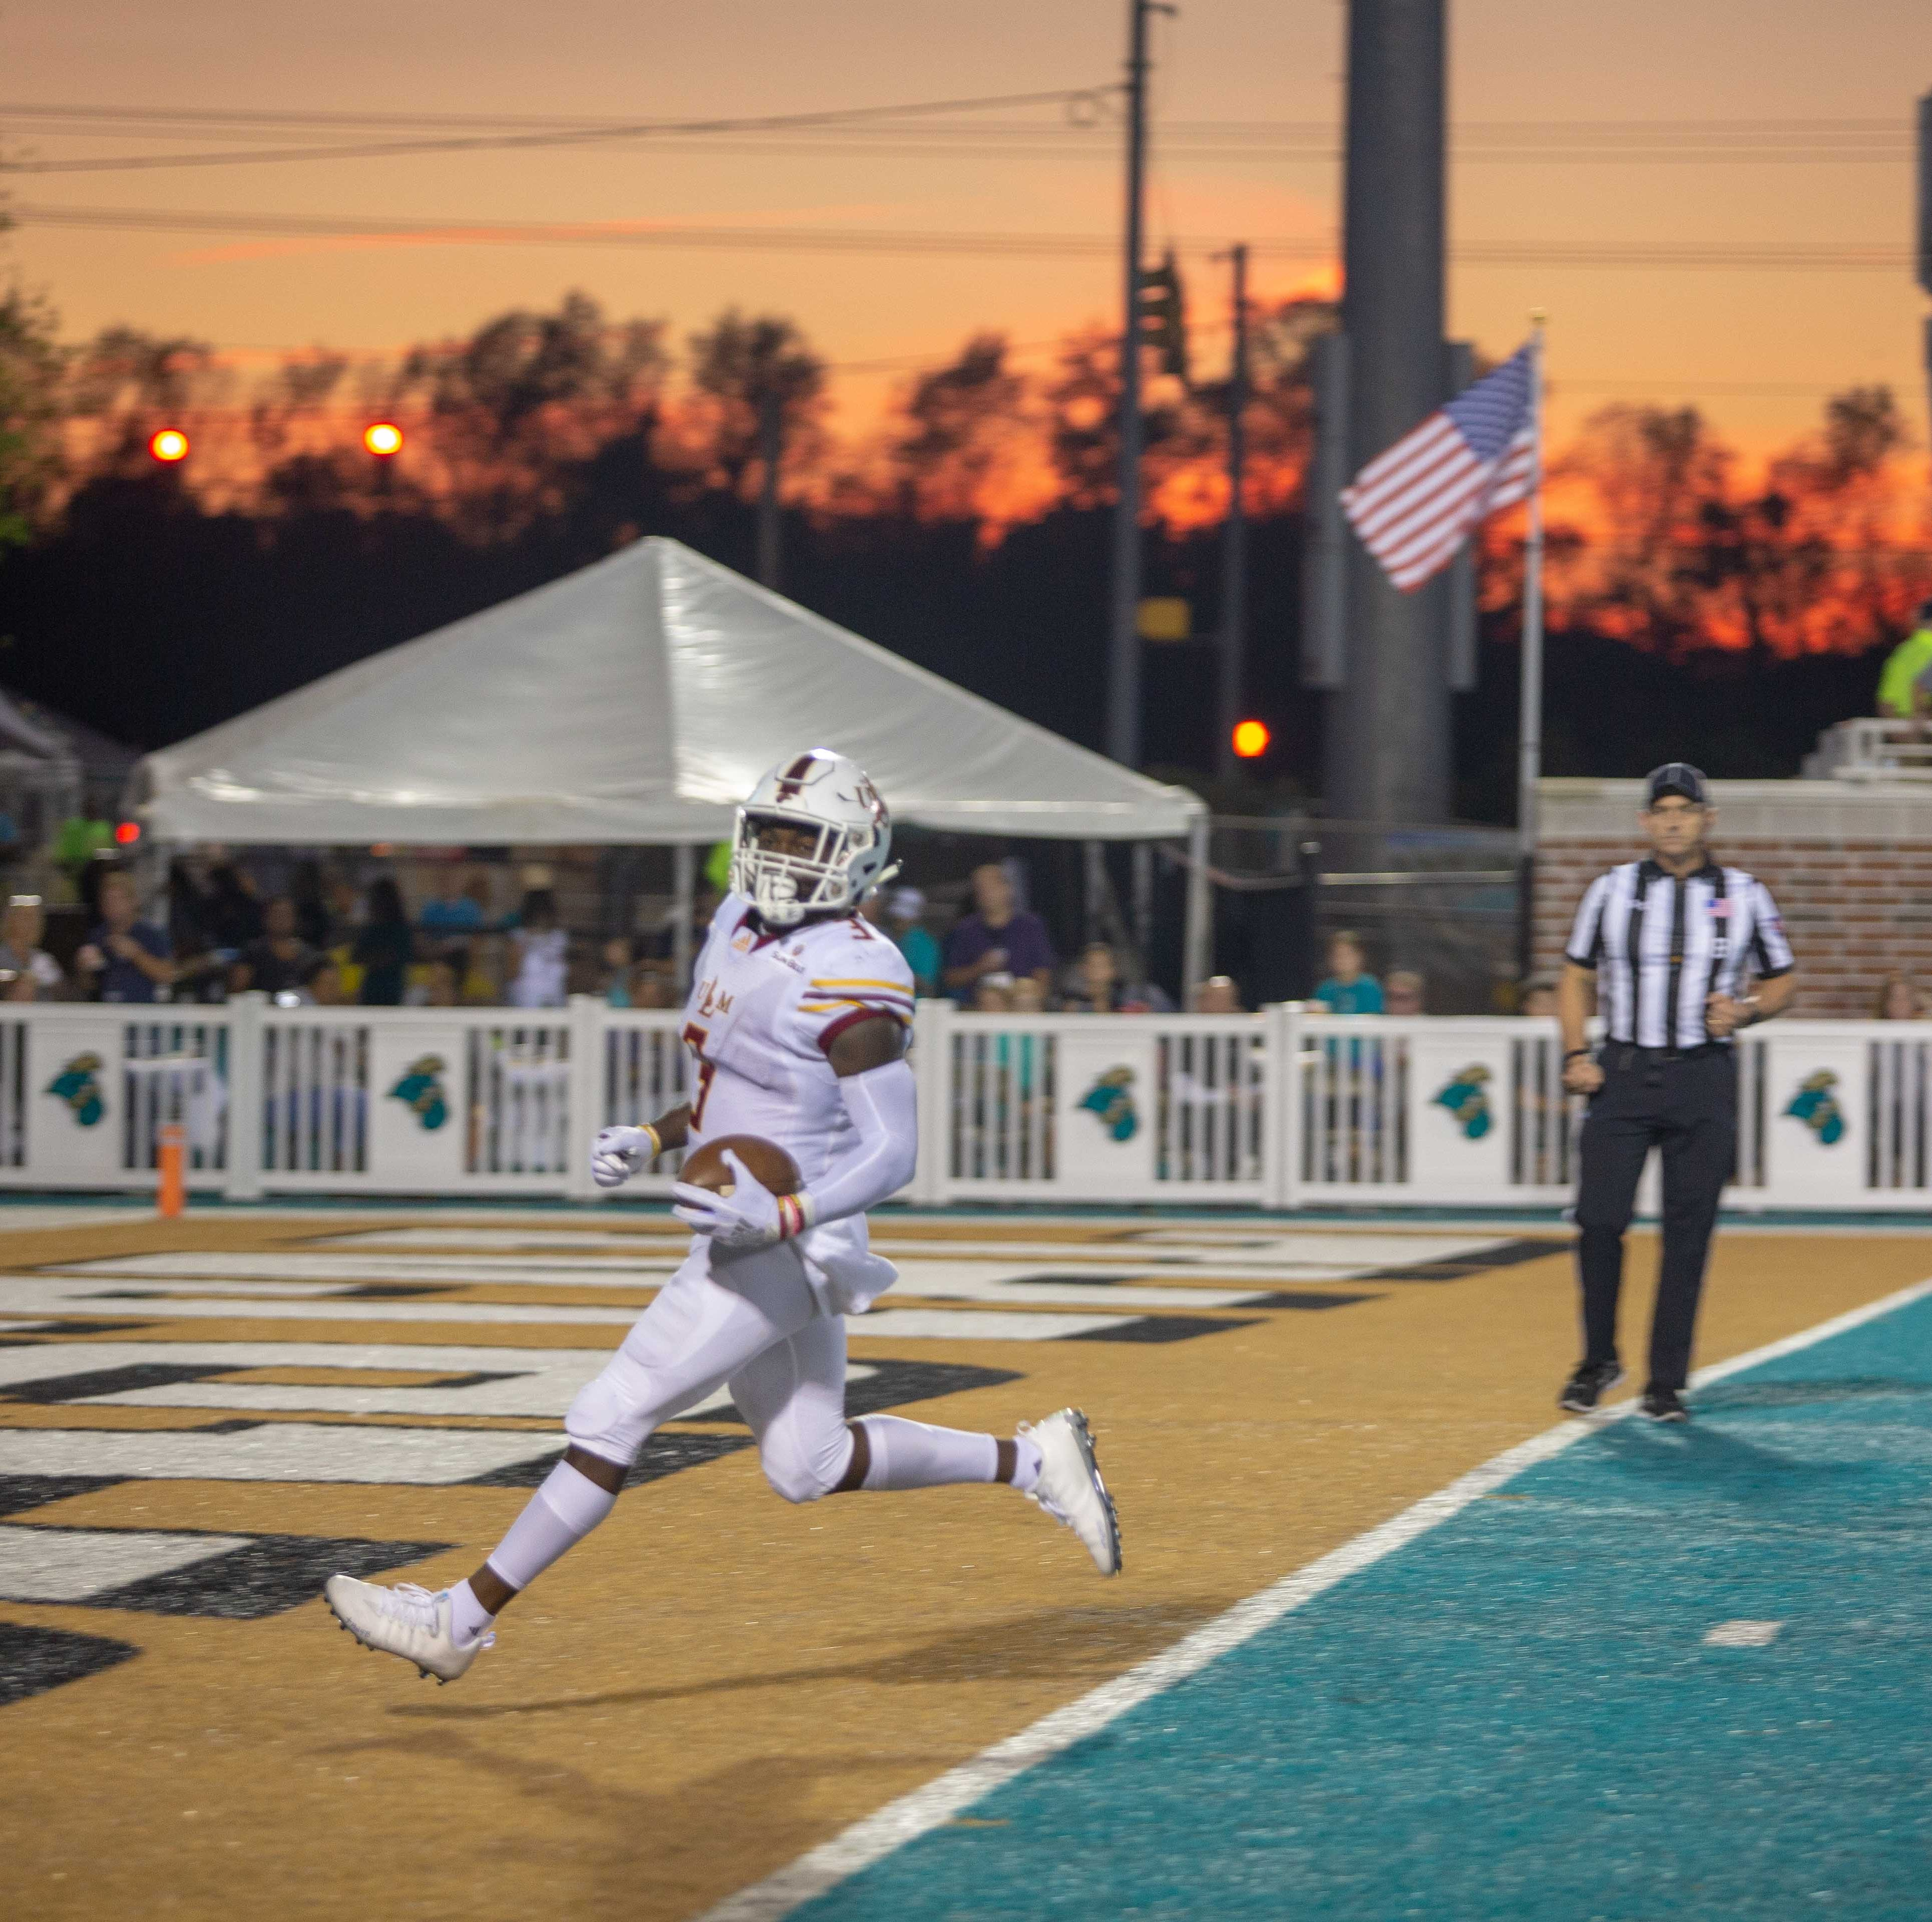 ULM snaps losing skid, outlasts Coastal Carolina